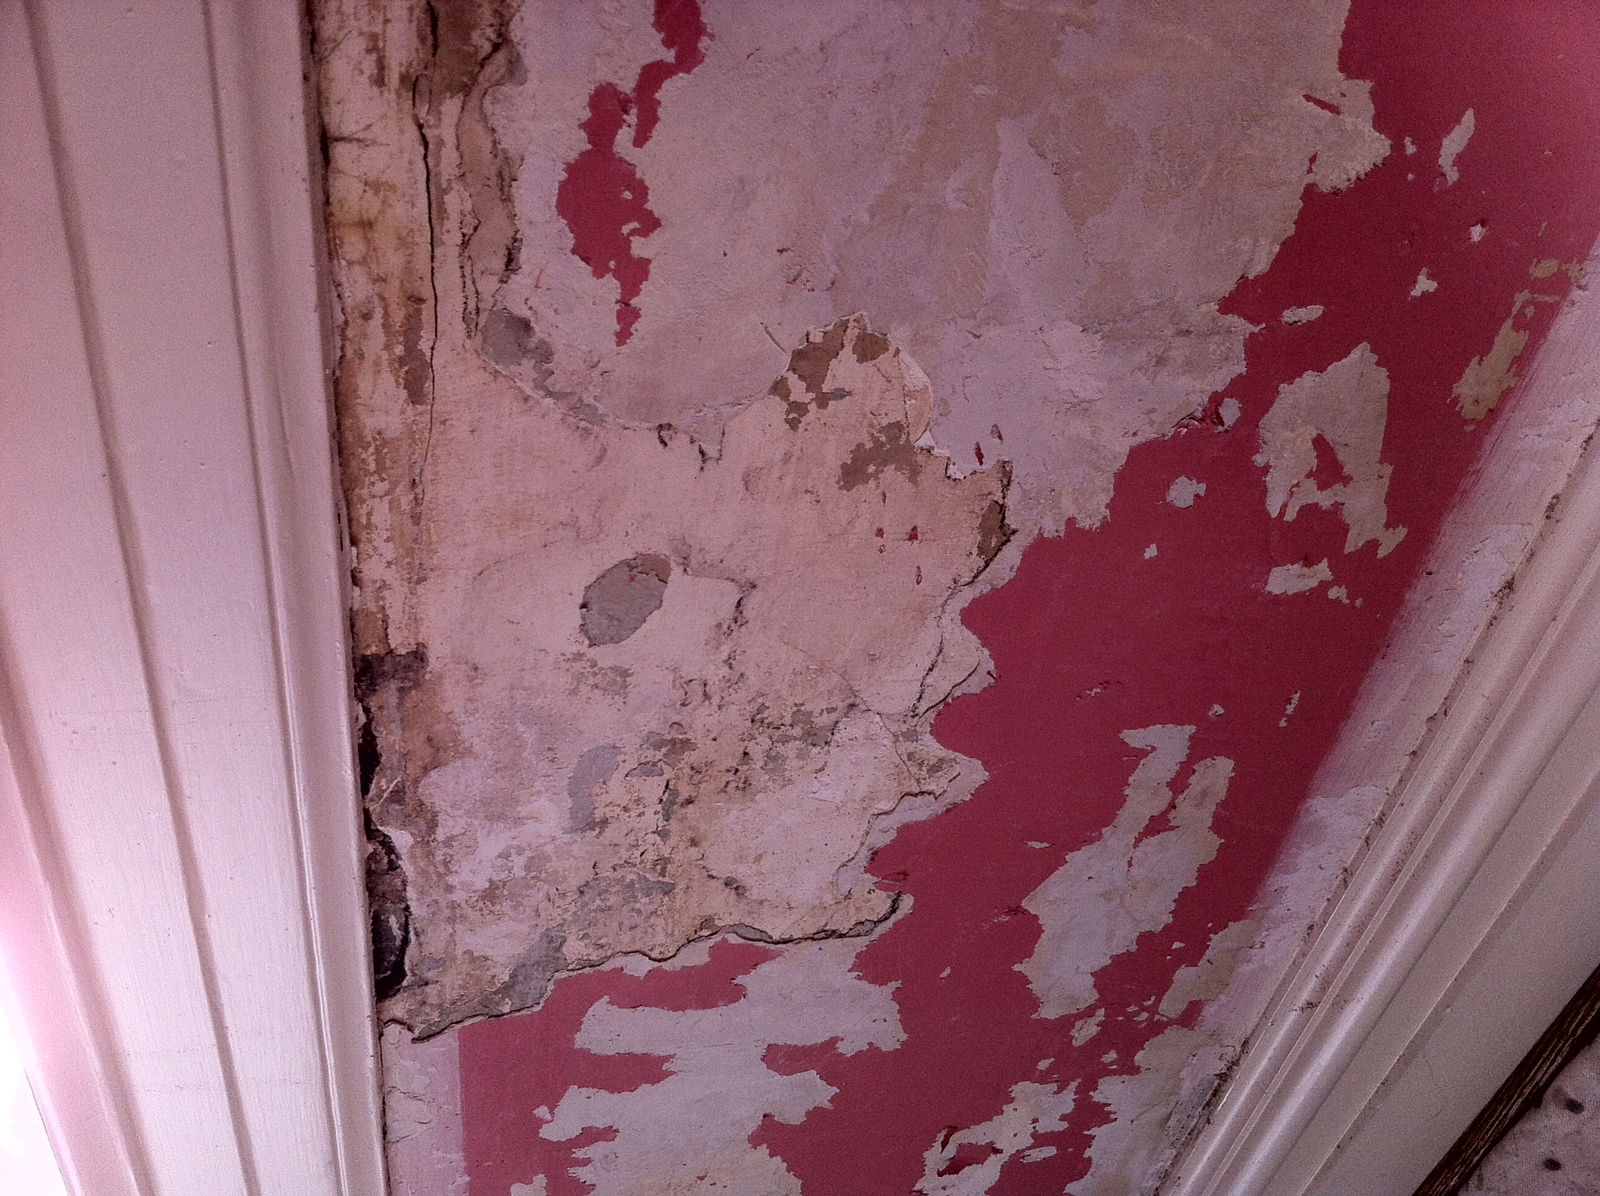 Repair Drywall After Removing Wallpaper